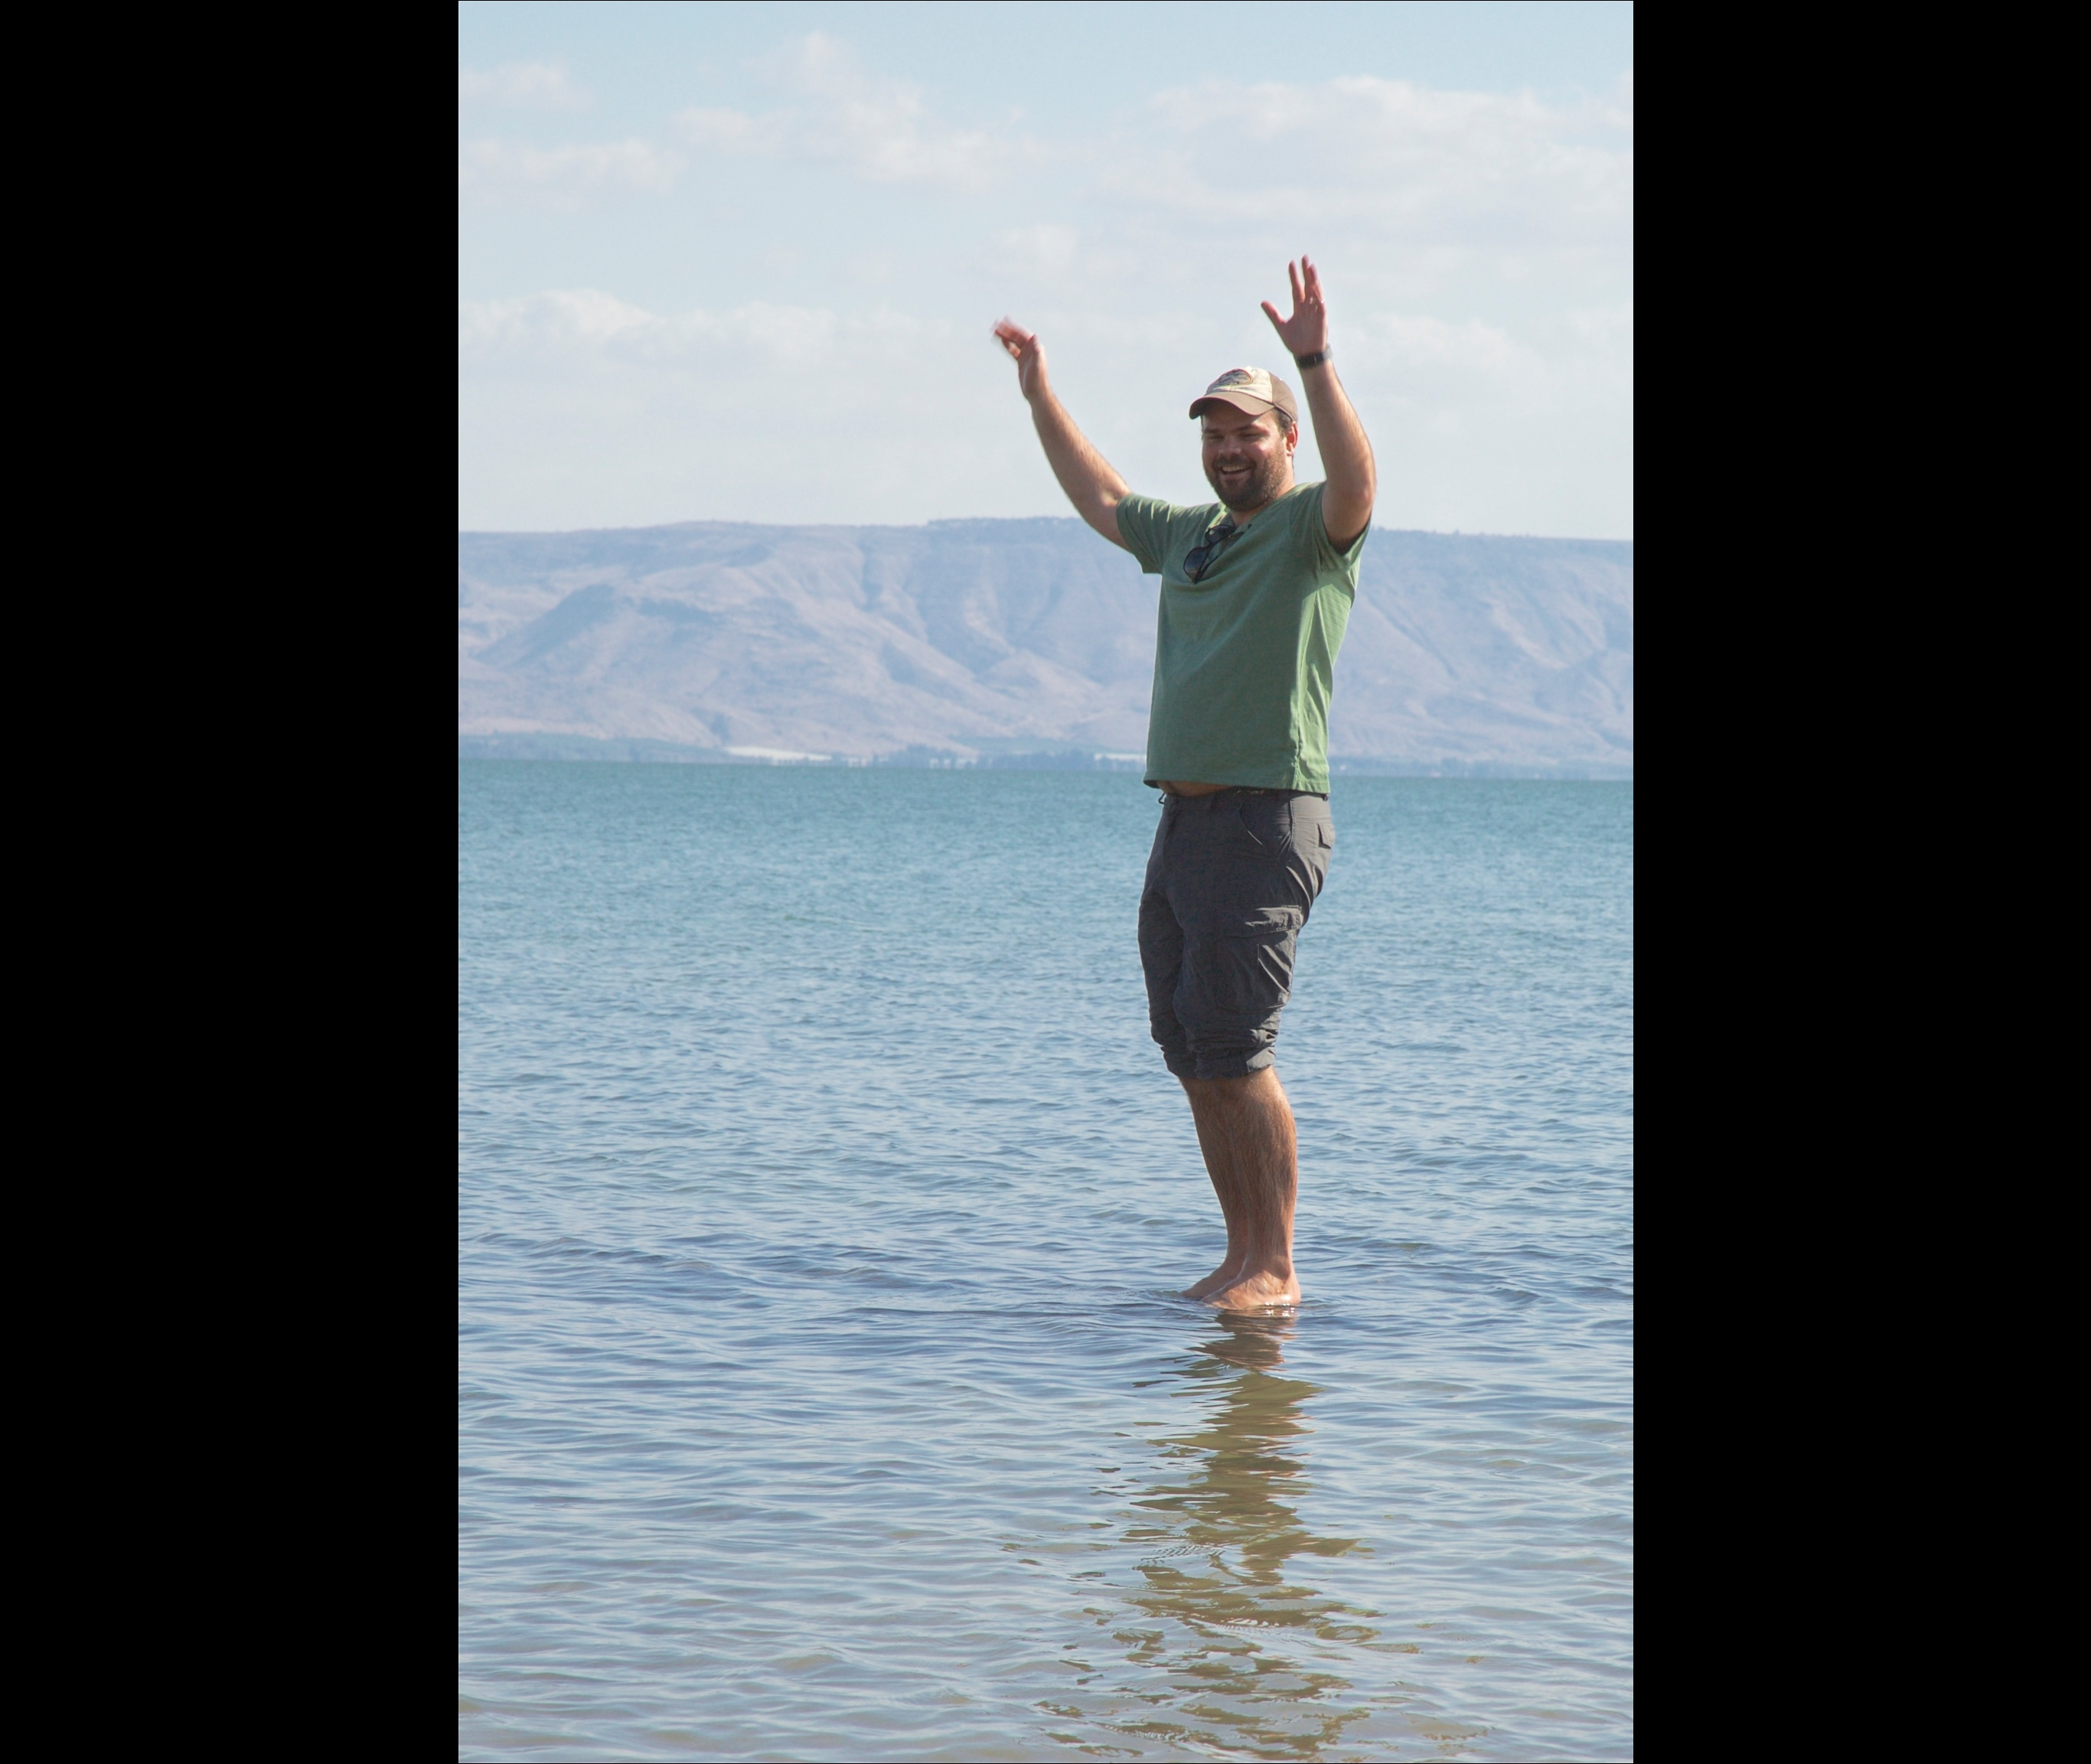 Sea of Galilee (at Church of the Primacy of St. Peter) 56552